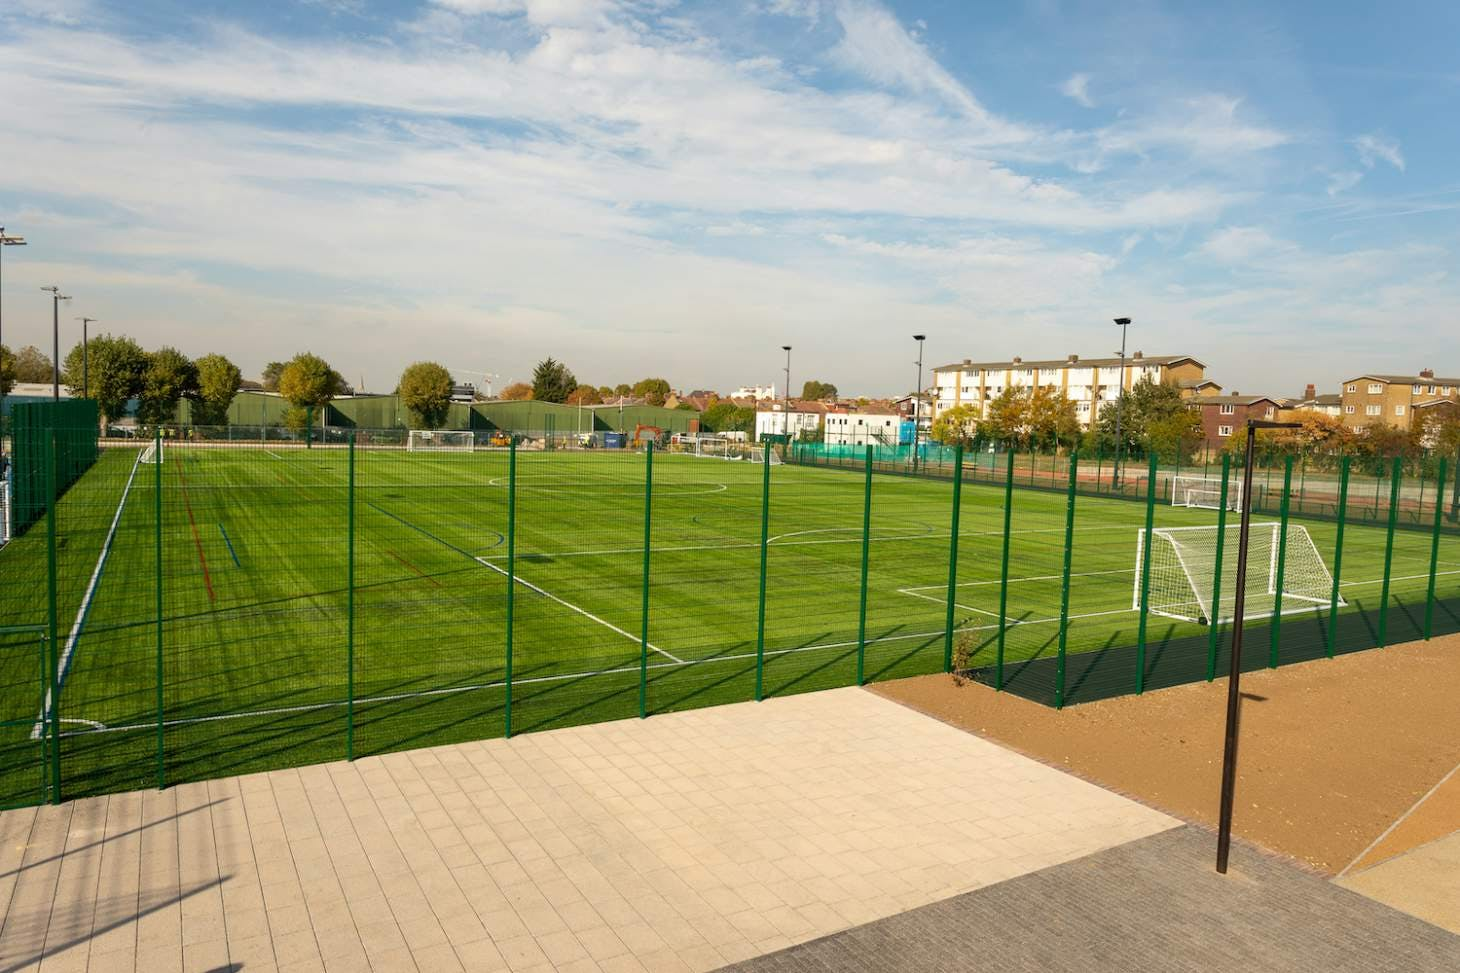 Feel Good Too (formerly Ive Farm Fields) 7 a side | 3G Astroturf football pitch